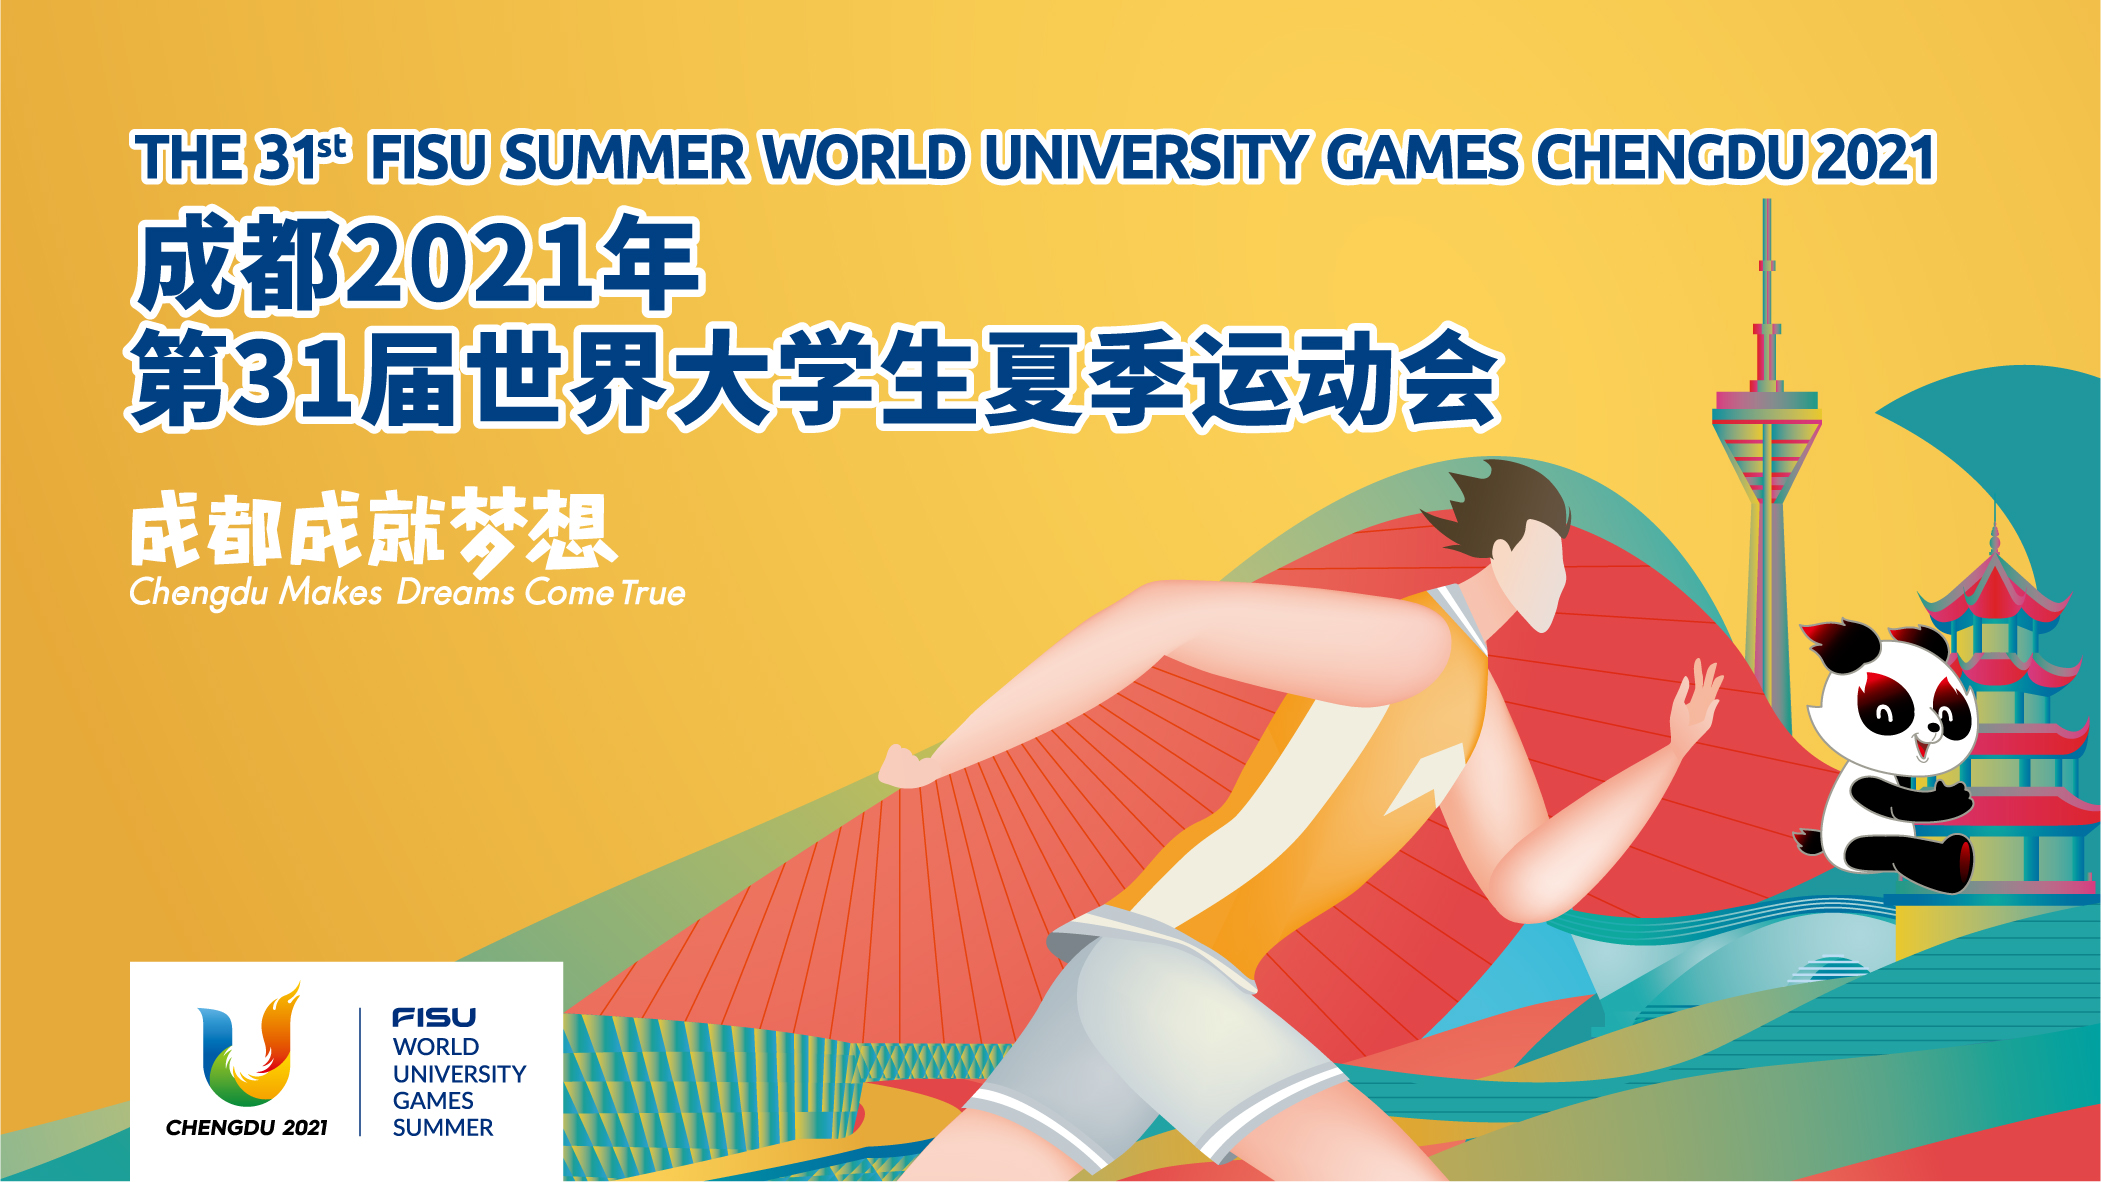 One-year Countdown Ceremony to the Chengdu 2021 FISU World University Games Summer Launched